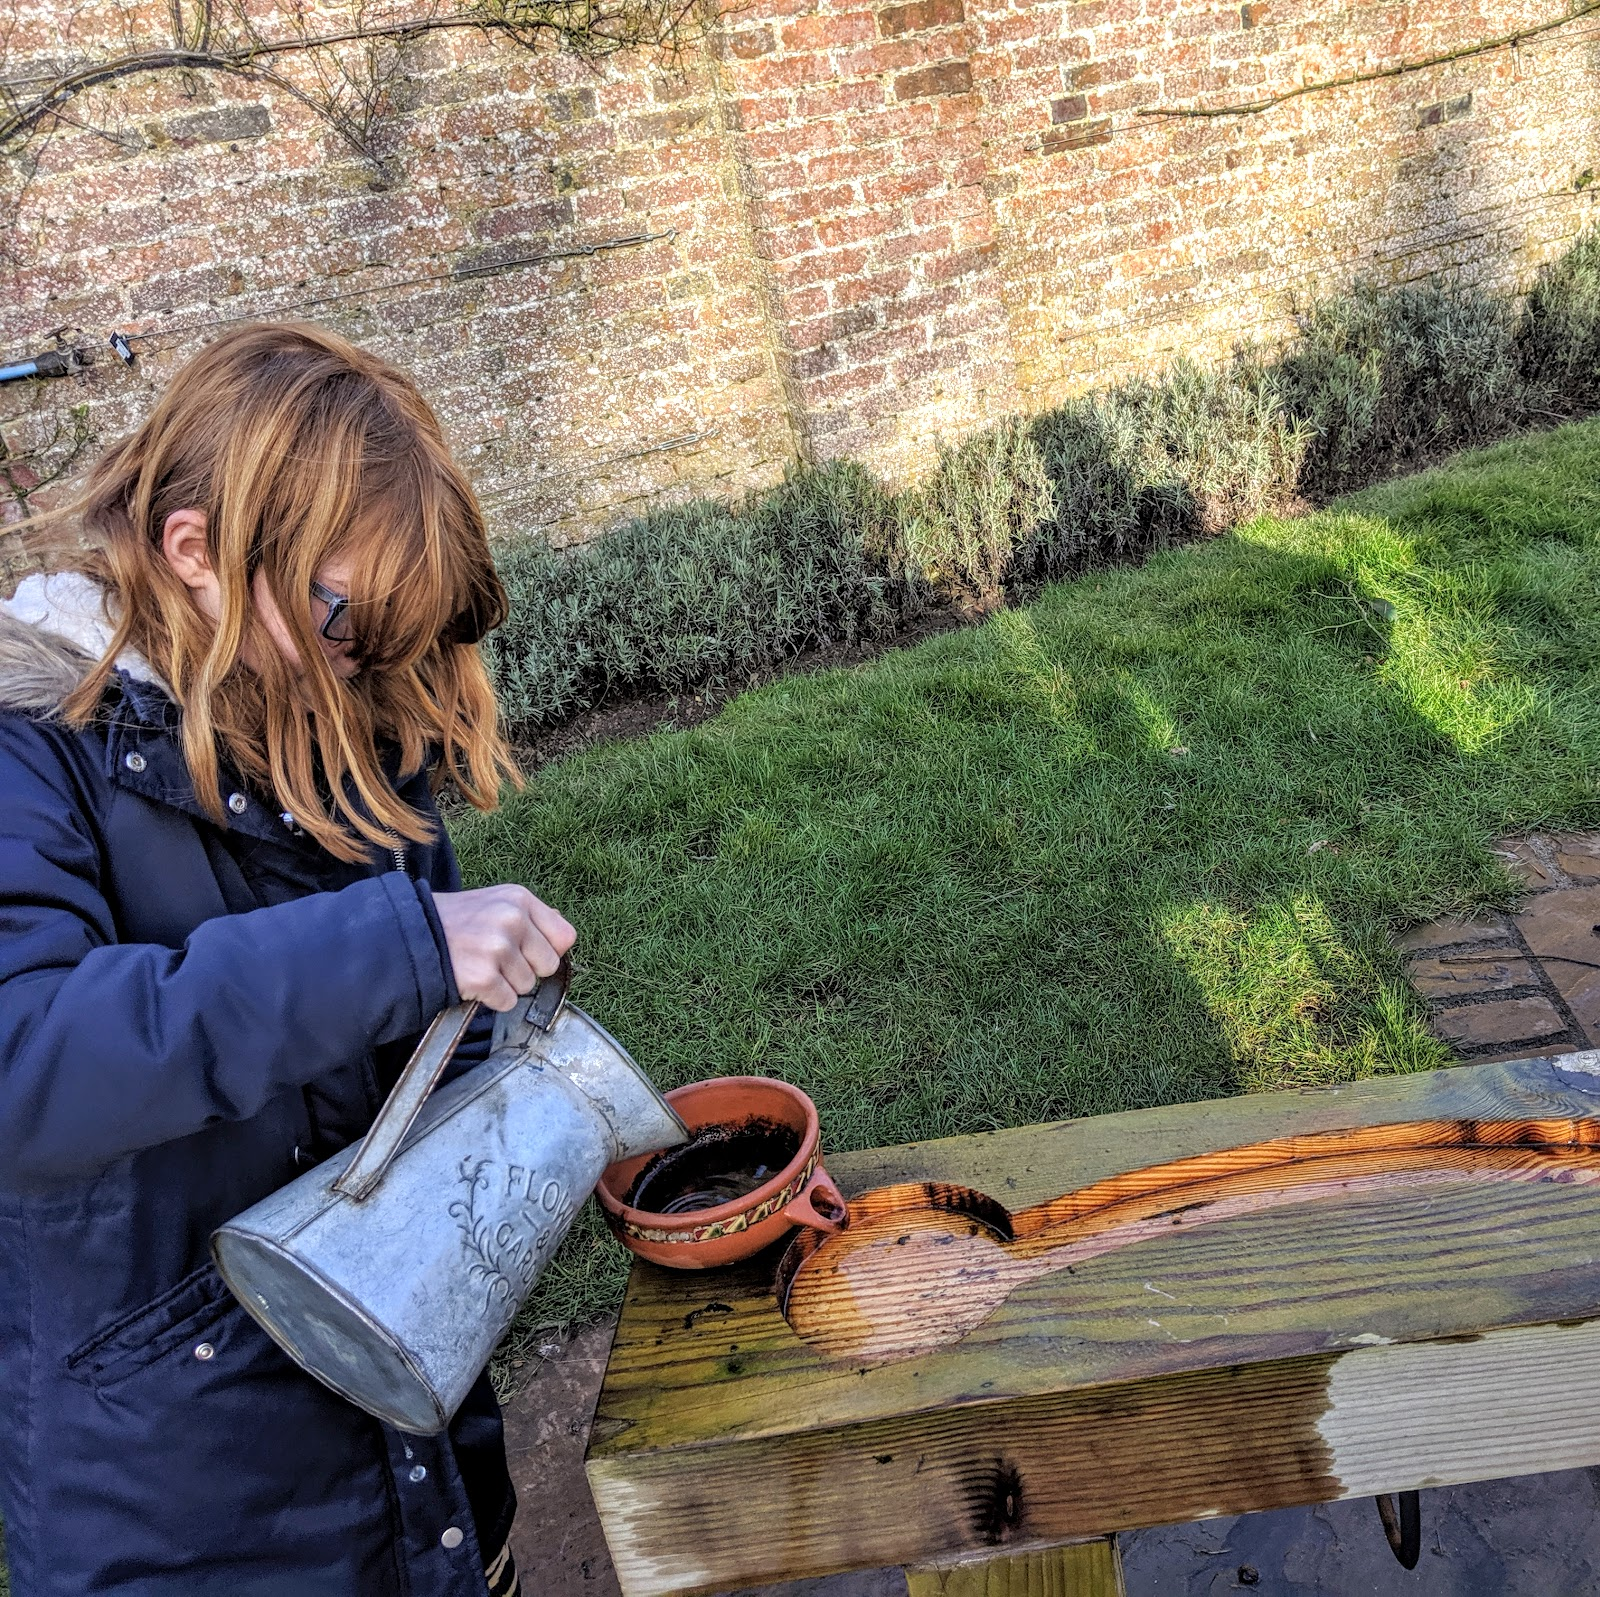 Howick Hall Snowdrop Walk & Sensory Garden - water play